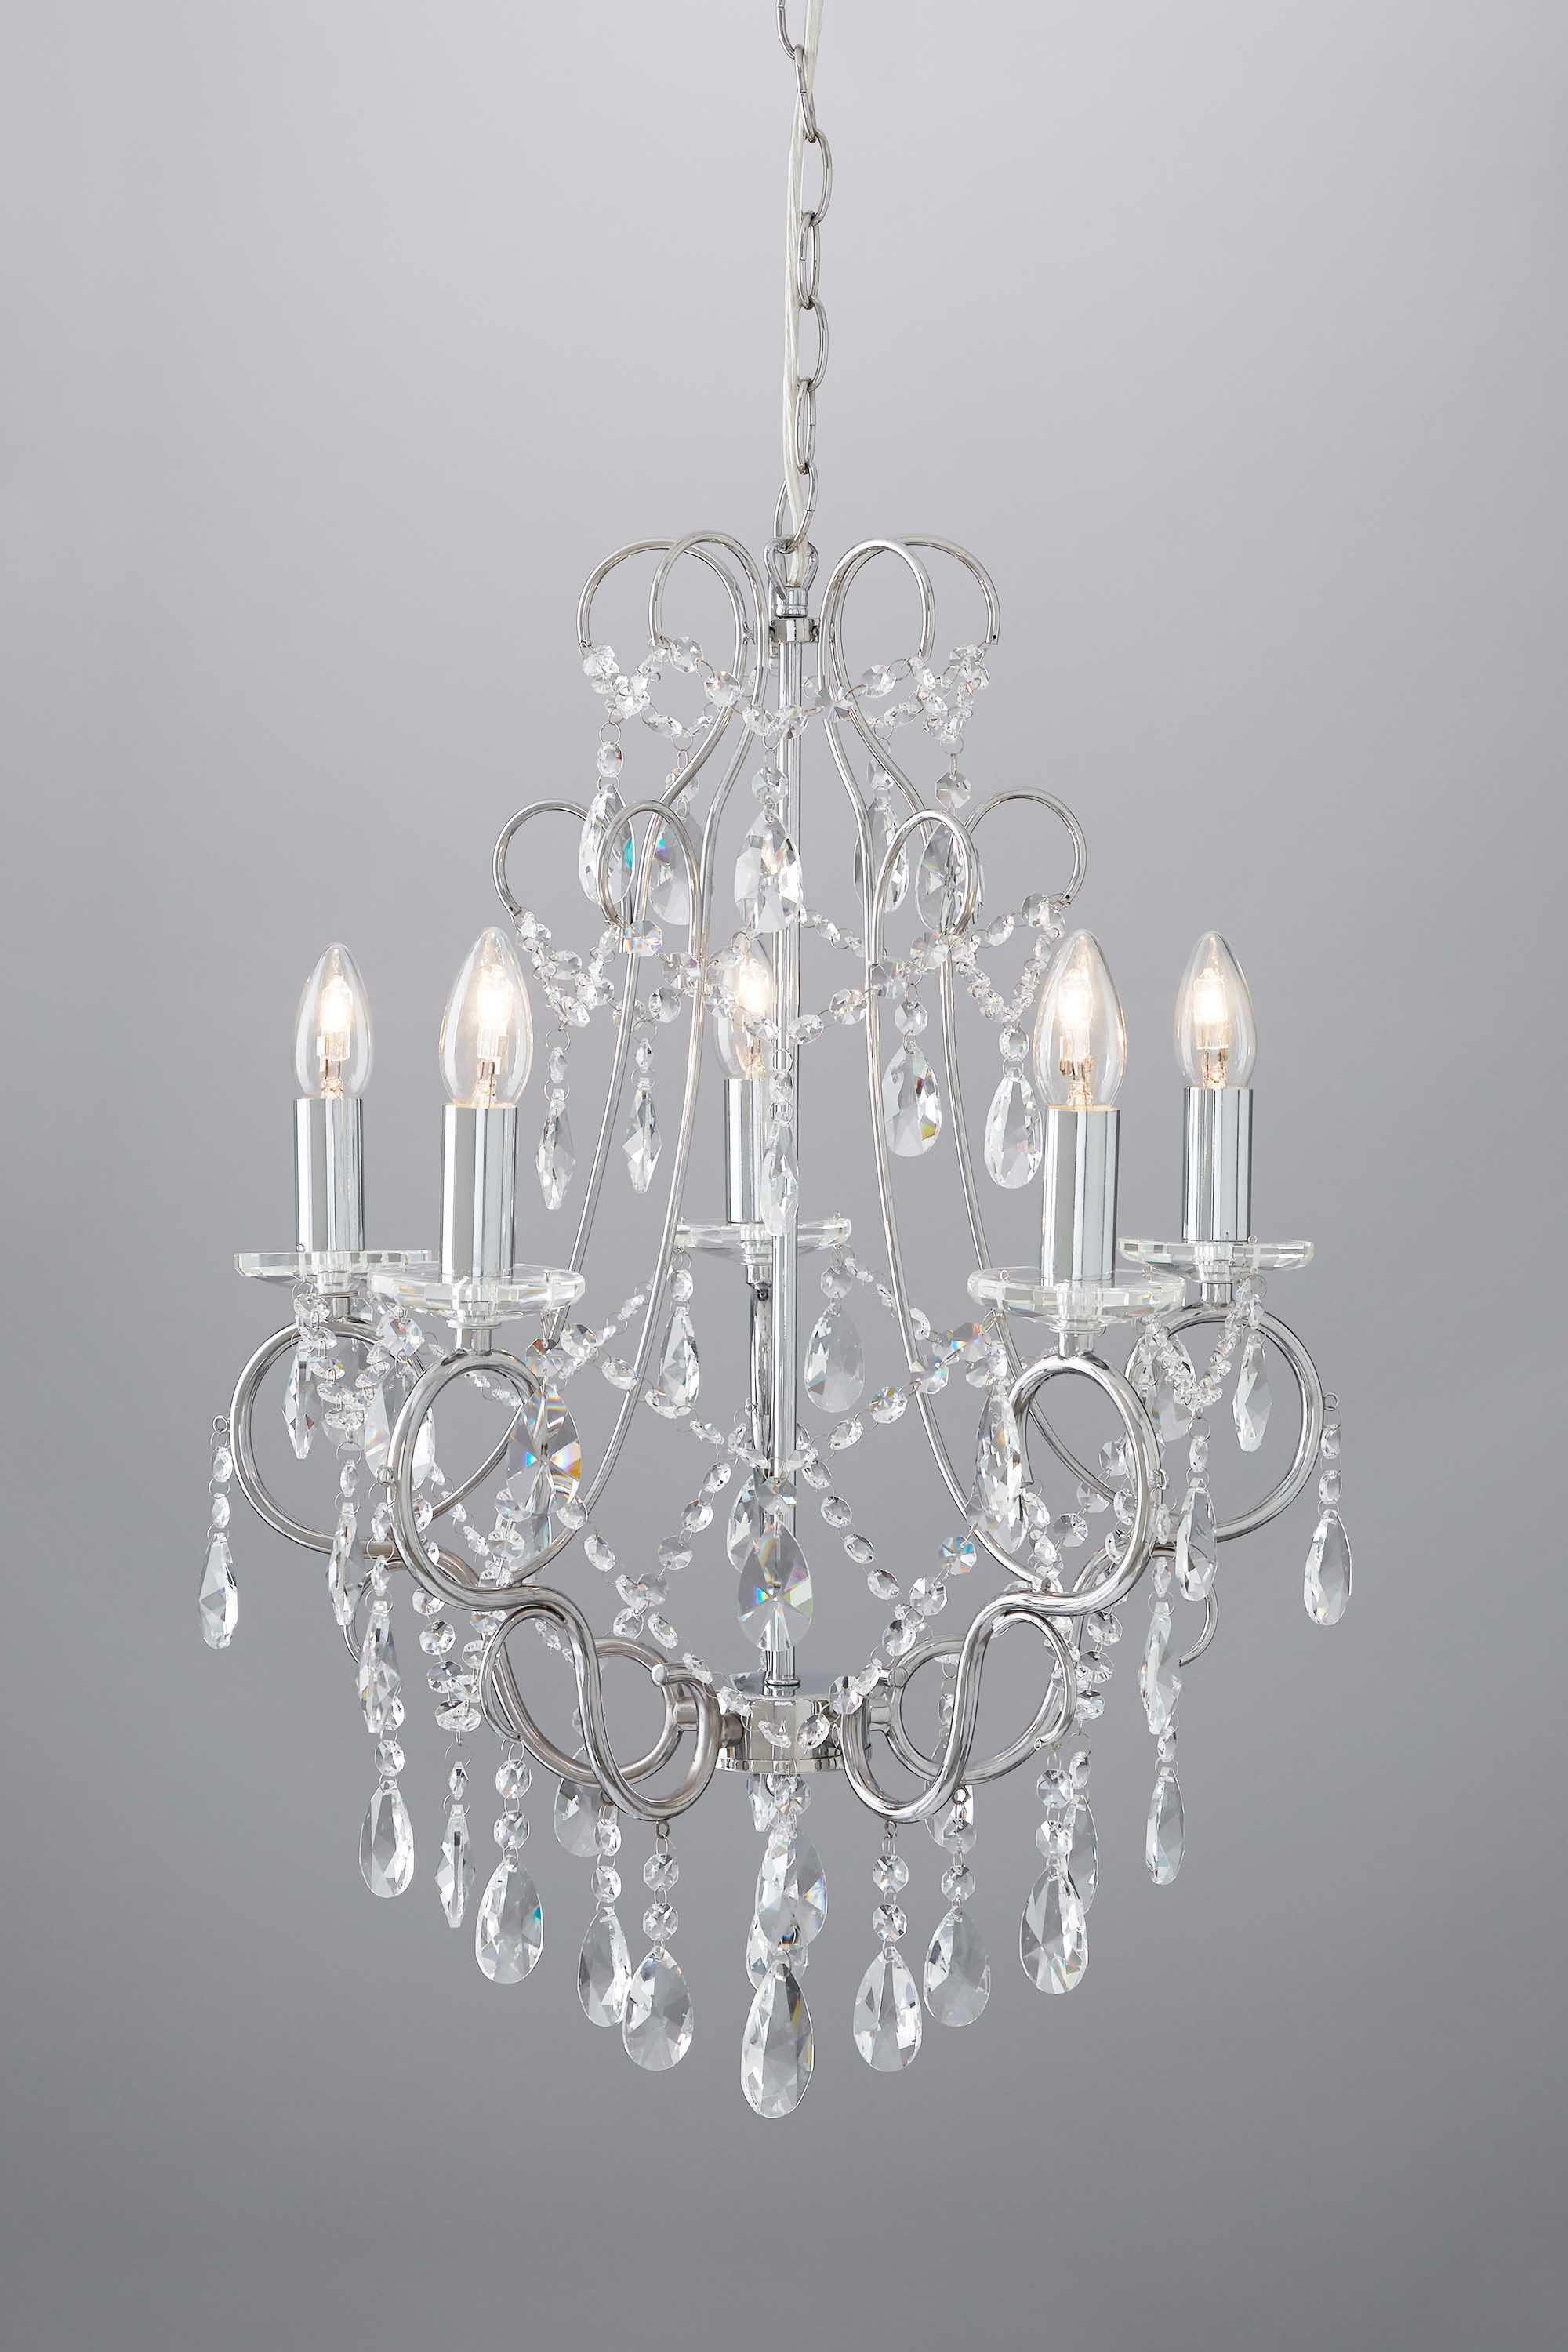 Viola 5 Light Chandelier BHS Crystal Chandeliers